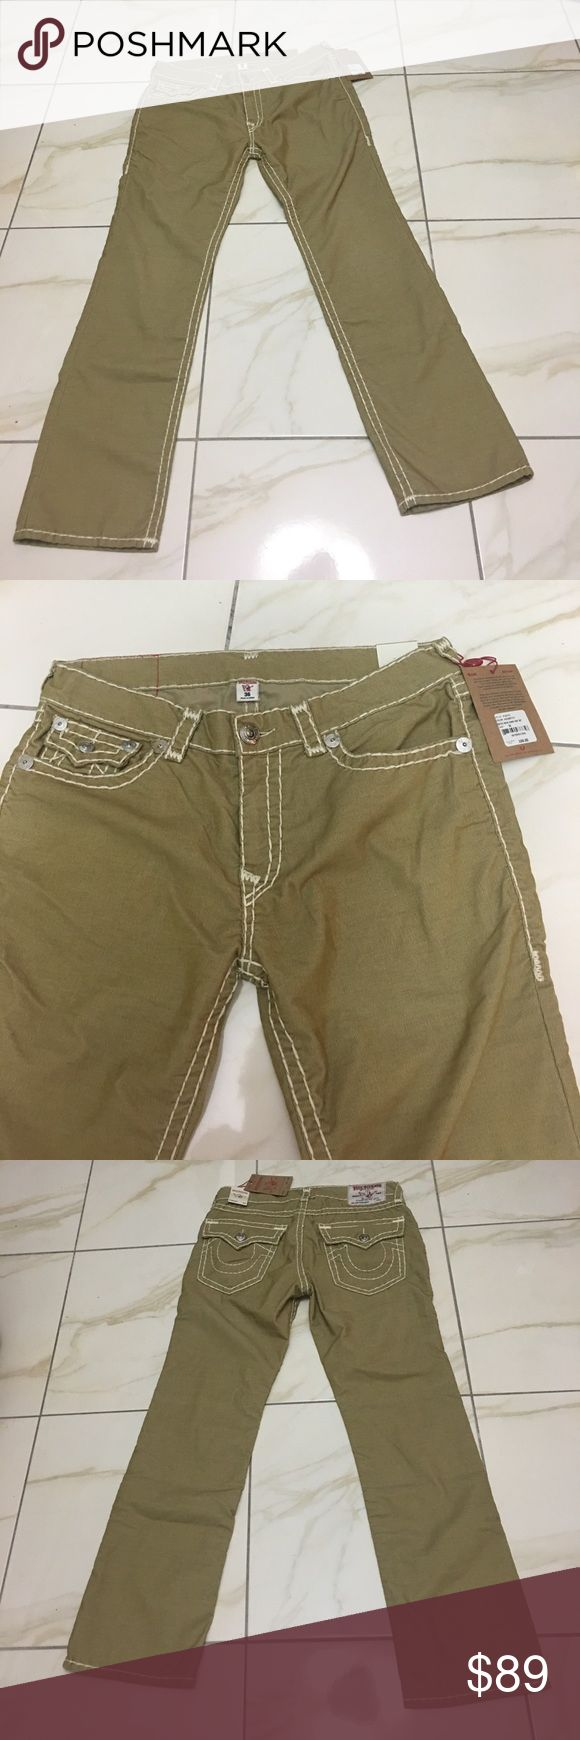 TRUE RELIGION JEANS Men's Straight Fit 36/32 NWT TRUE RELIGION JEANS Corduroy. New with tags. Style R201F2 True Religion Pants Corduroy